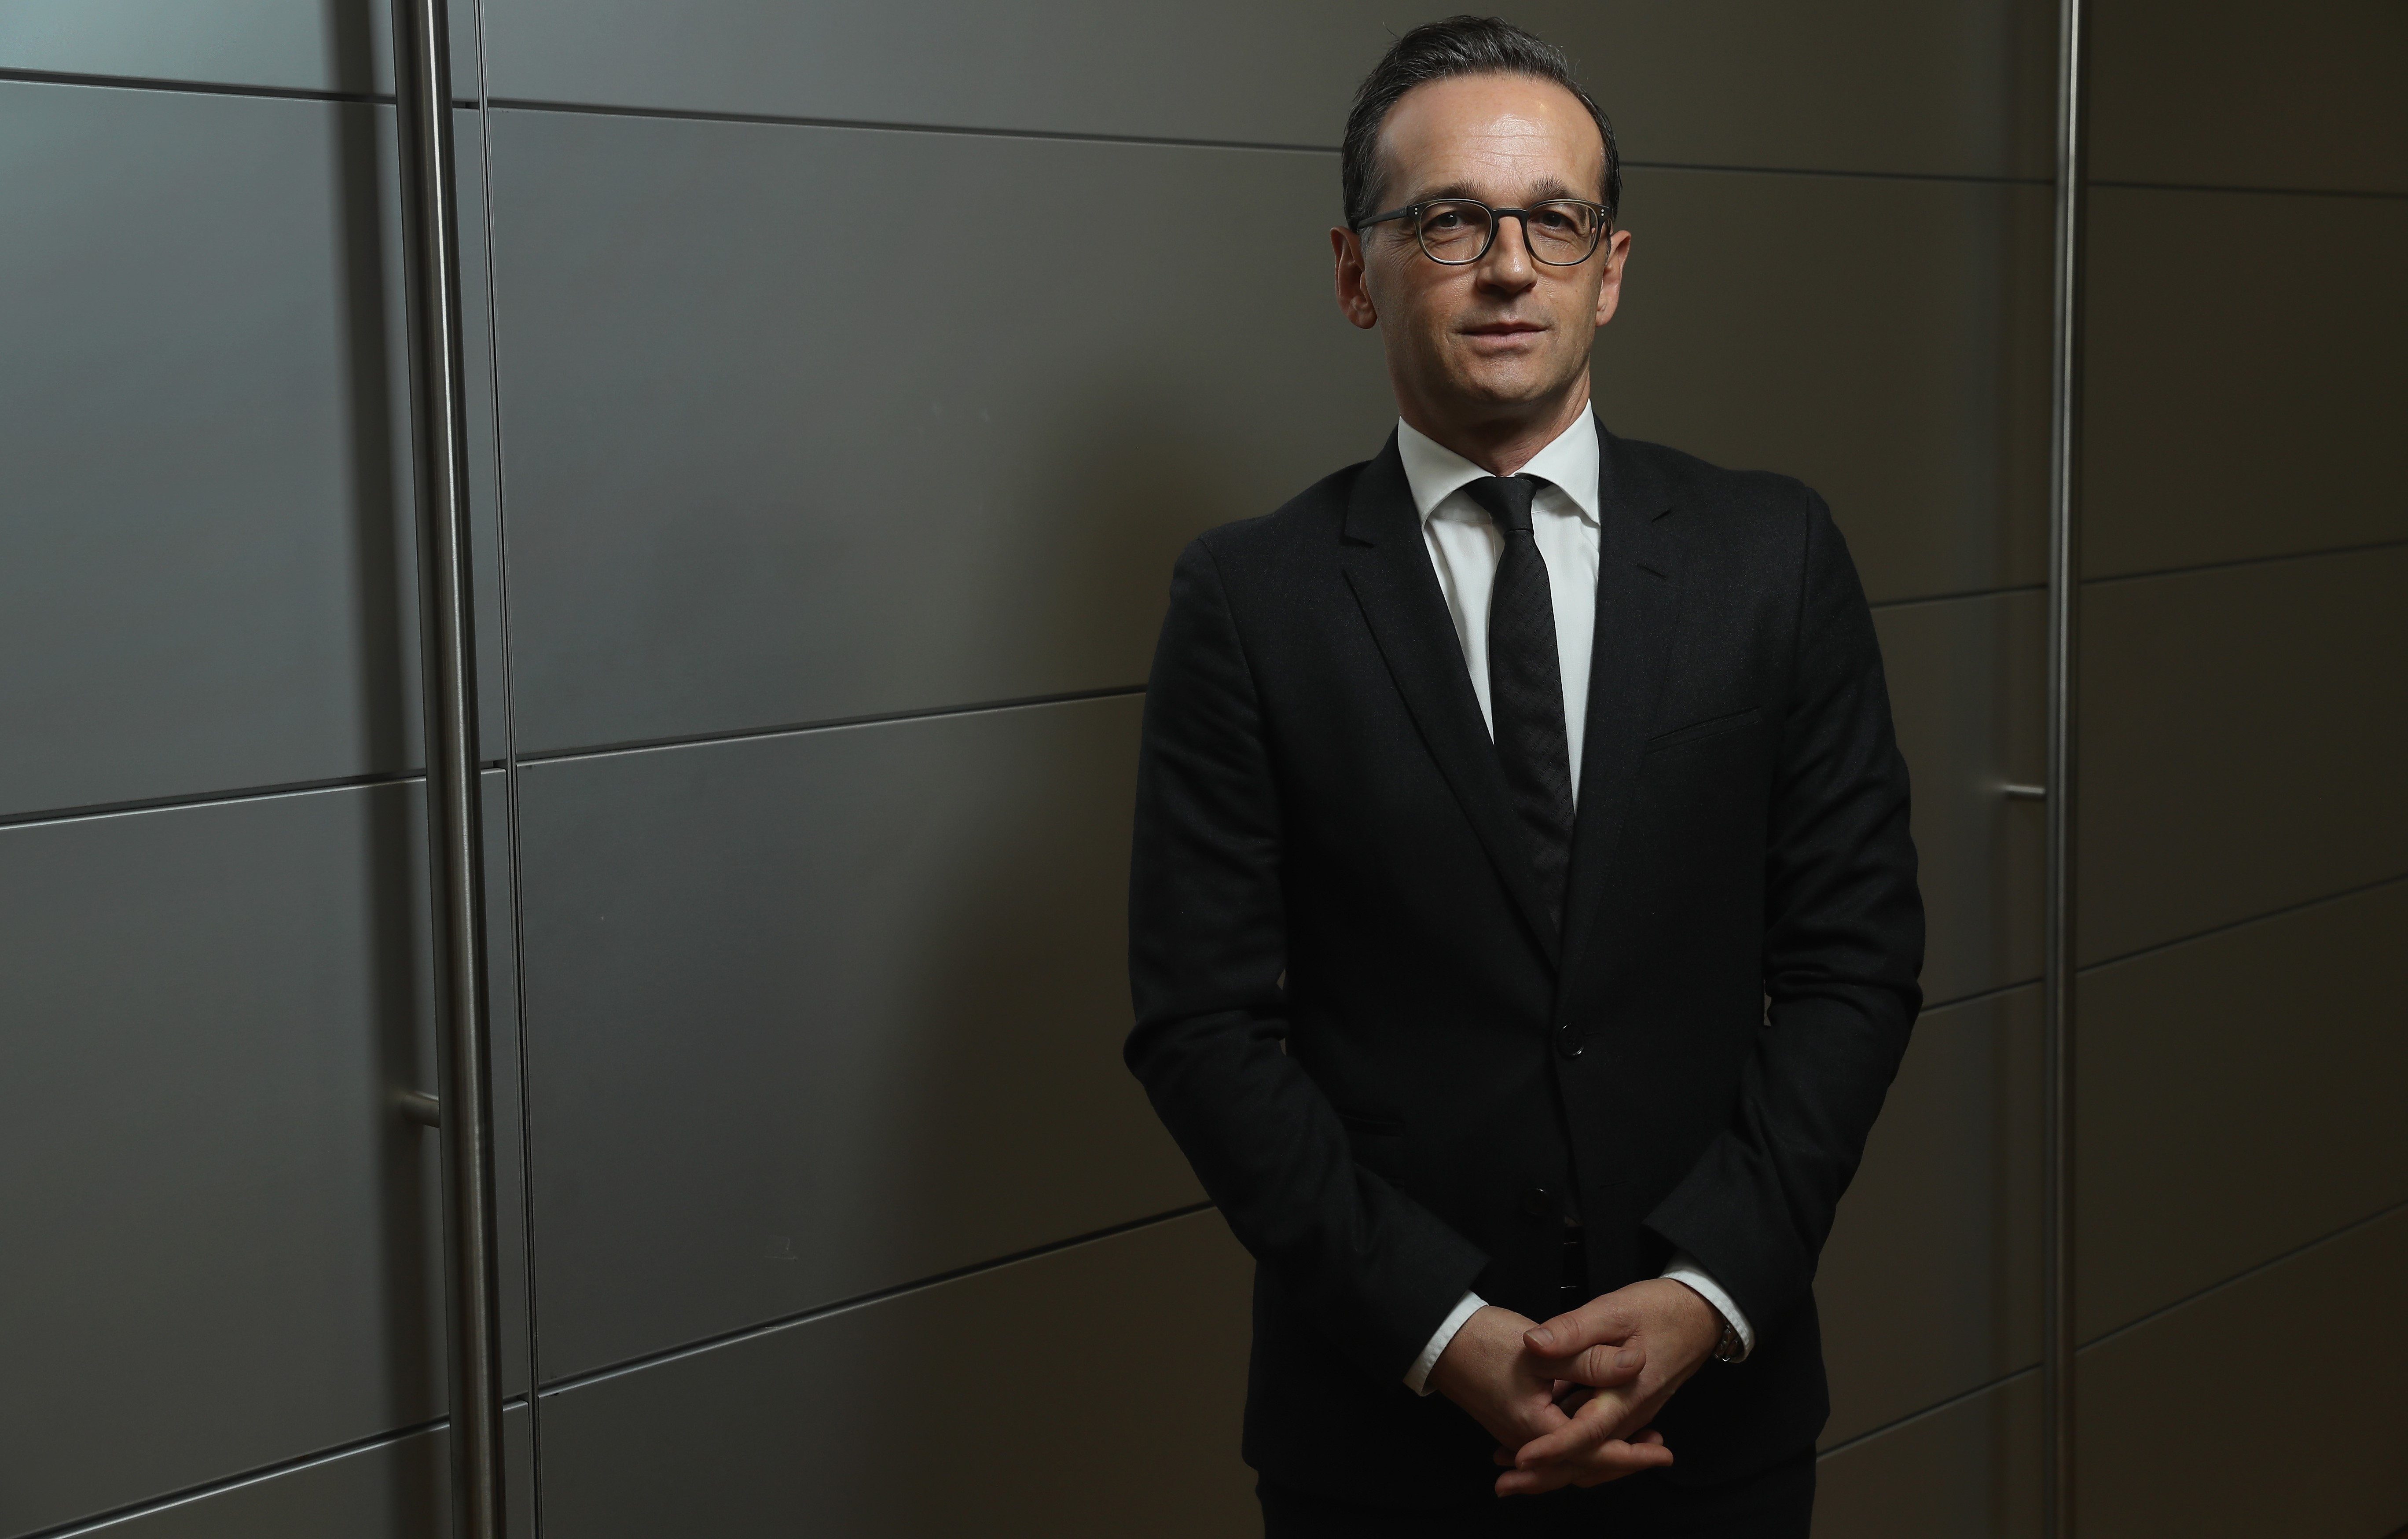 Germany's Justice and Consumer Protection Minister Heiko Maas (Photo: Getty Images/Sean Gallup)